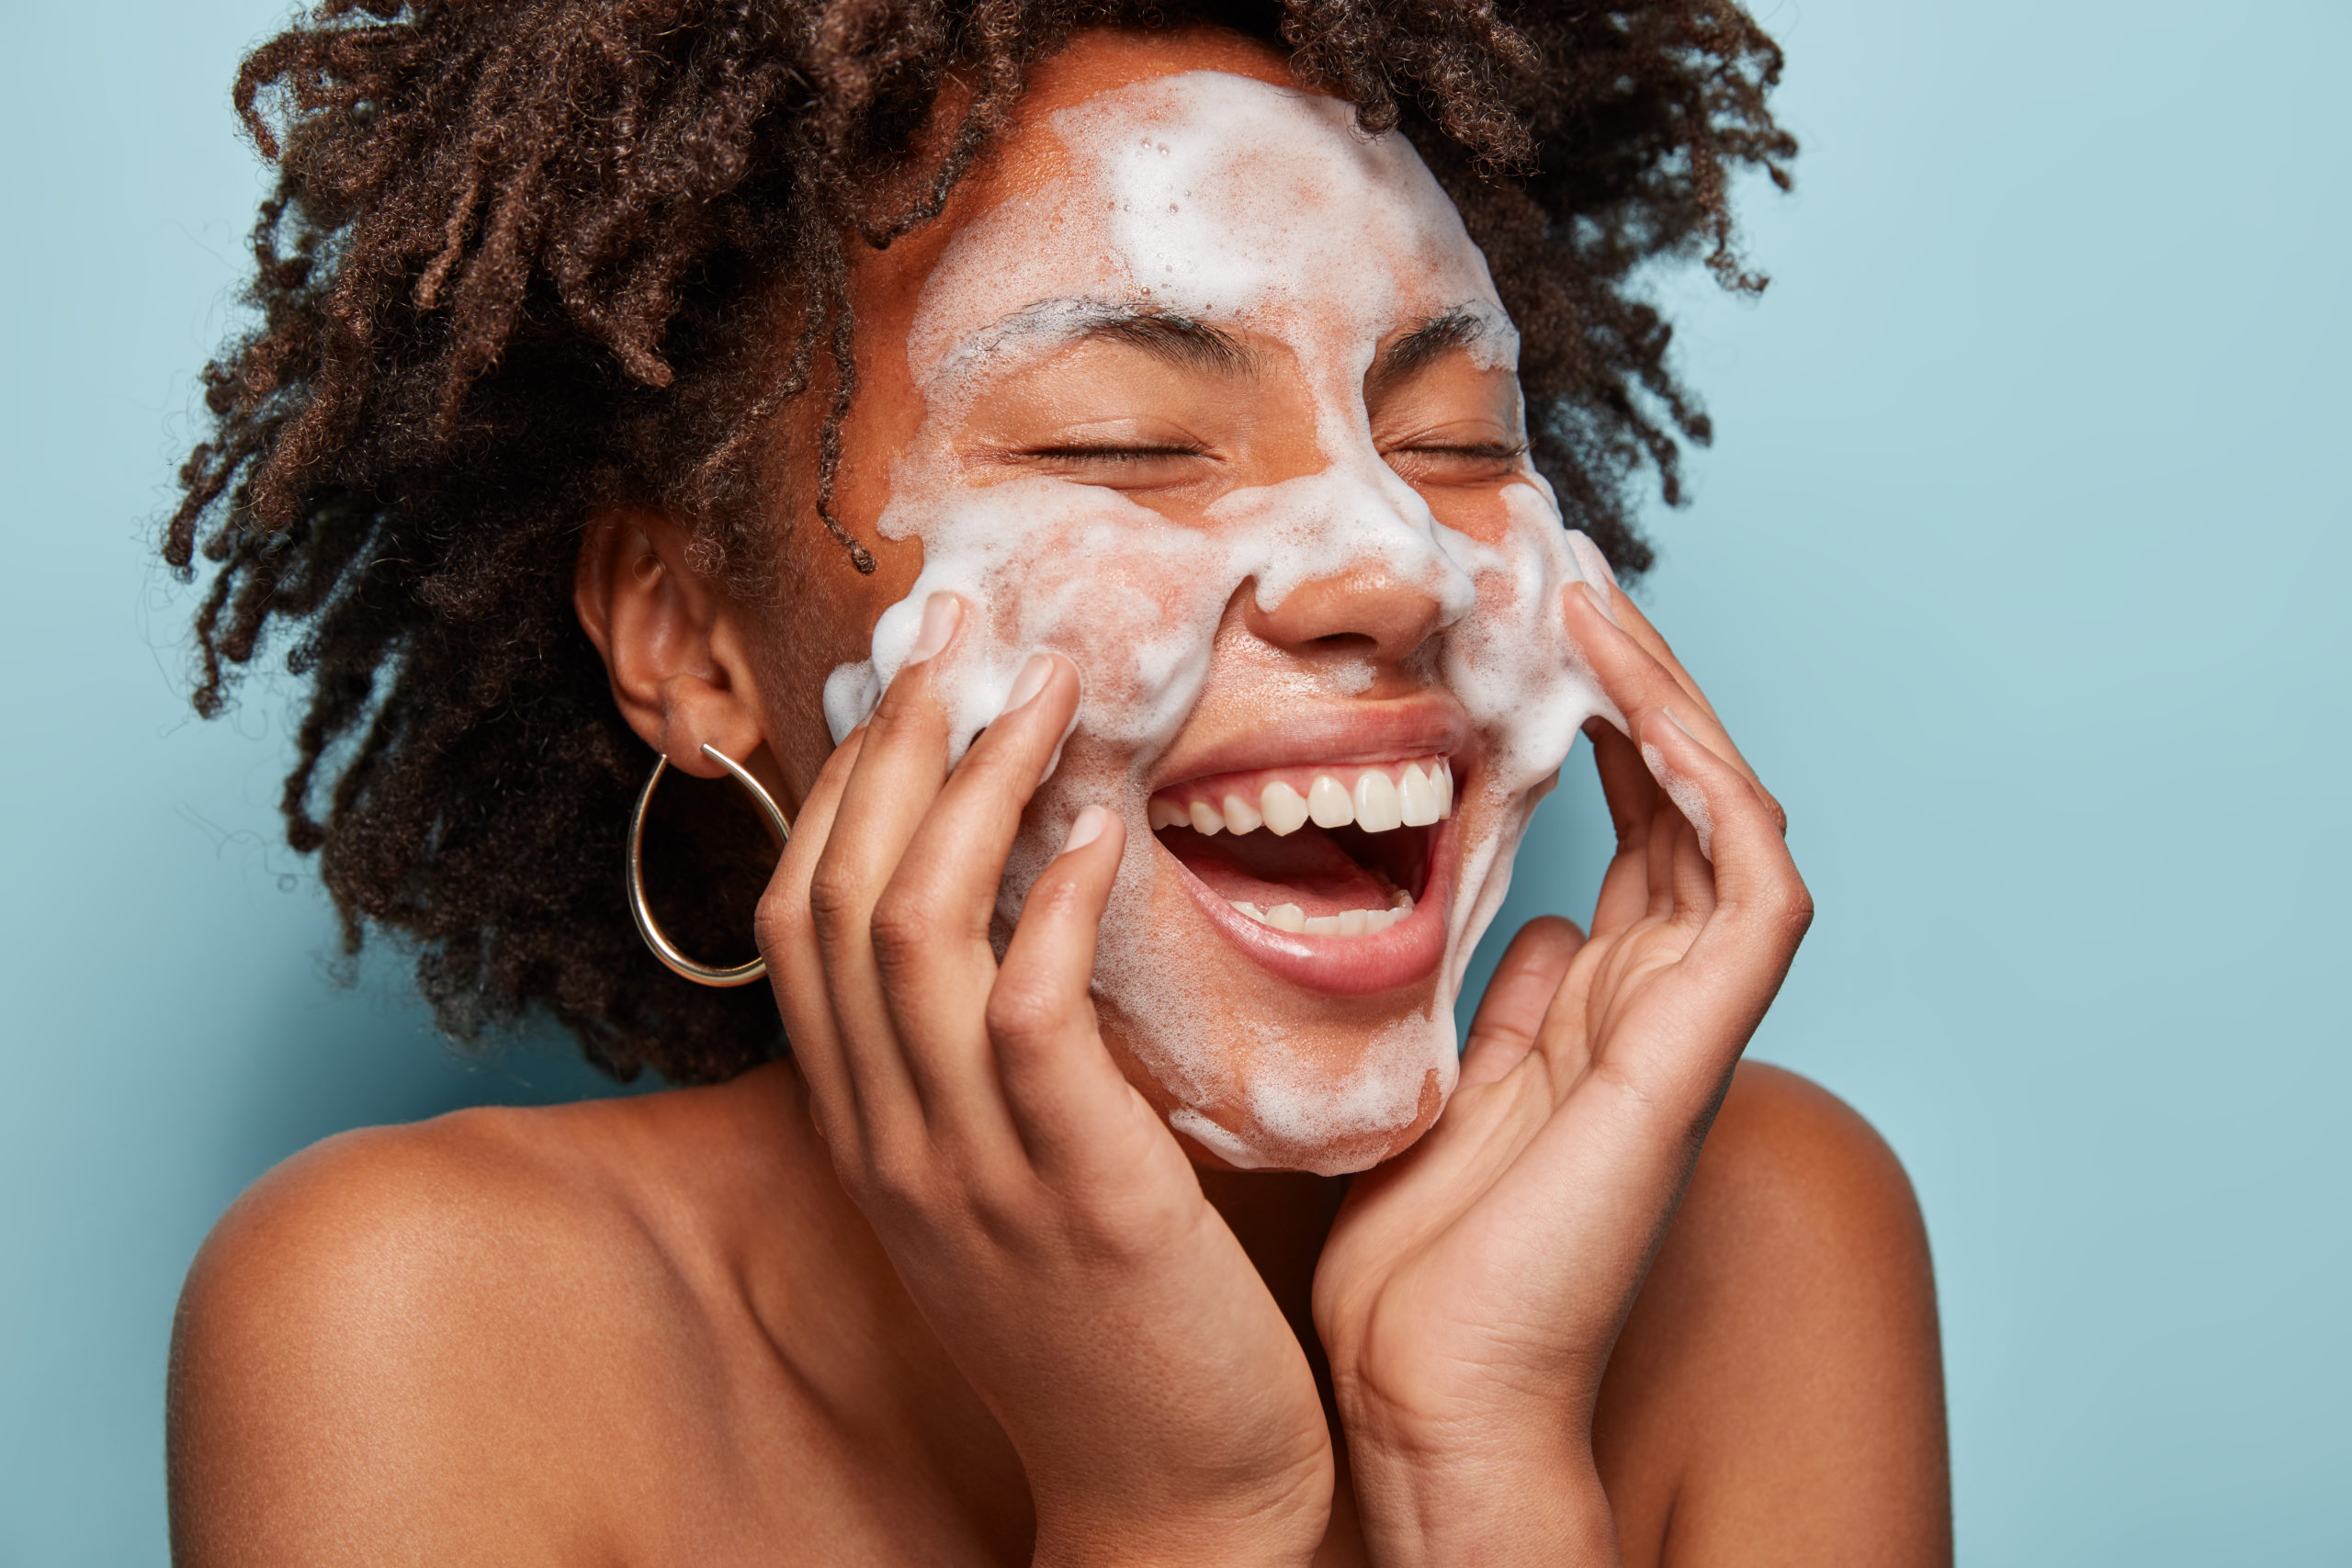 Cheerful woman washing her face and smiling